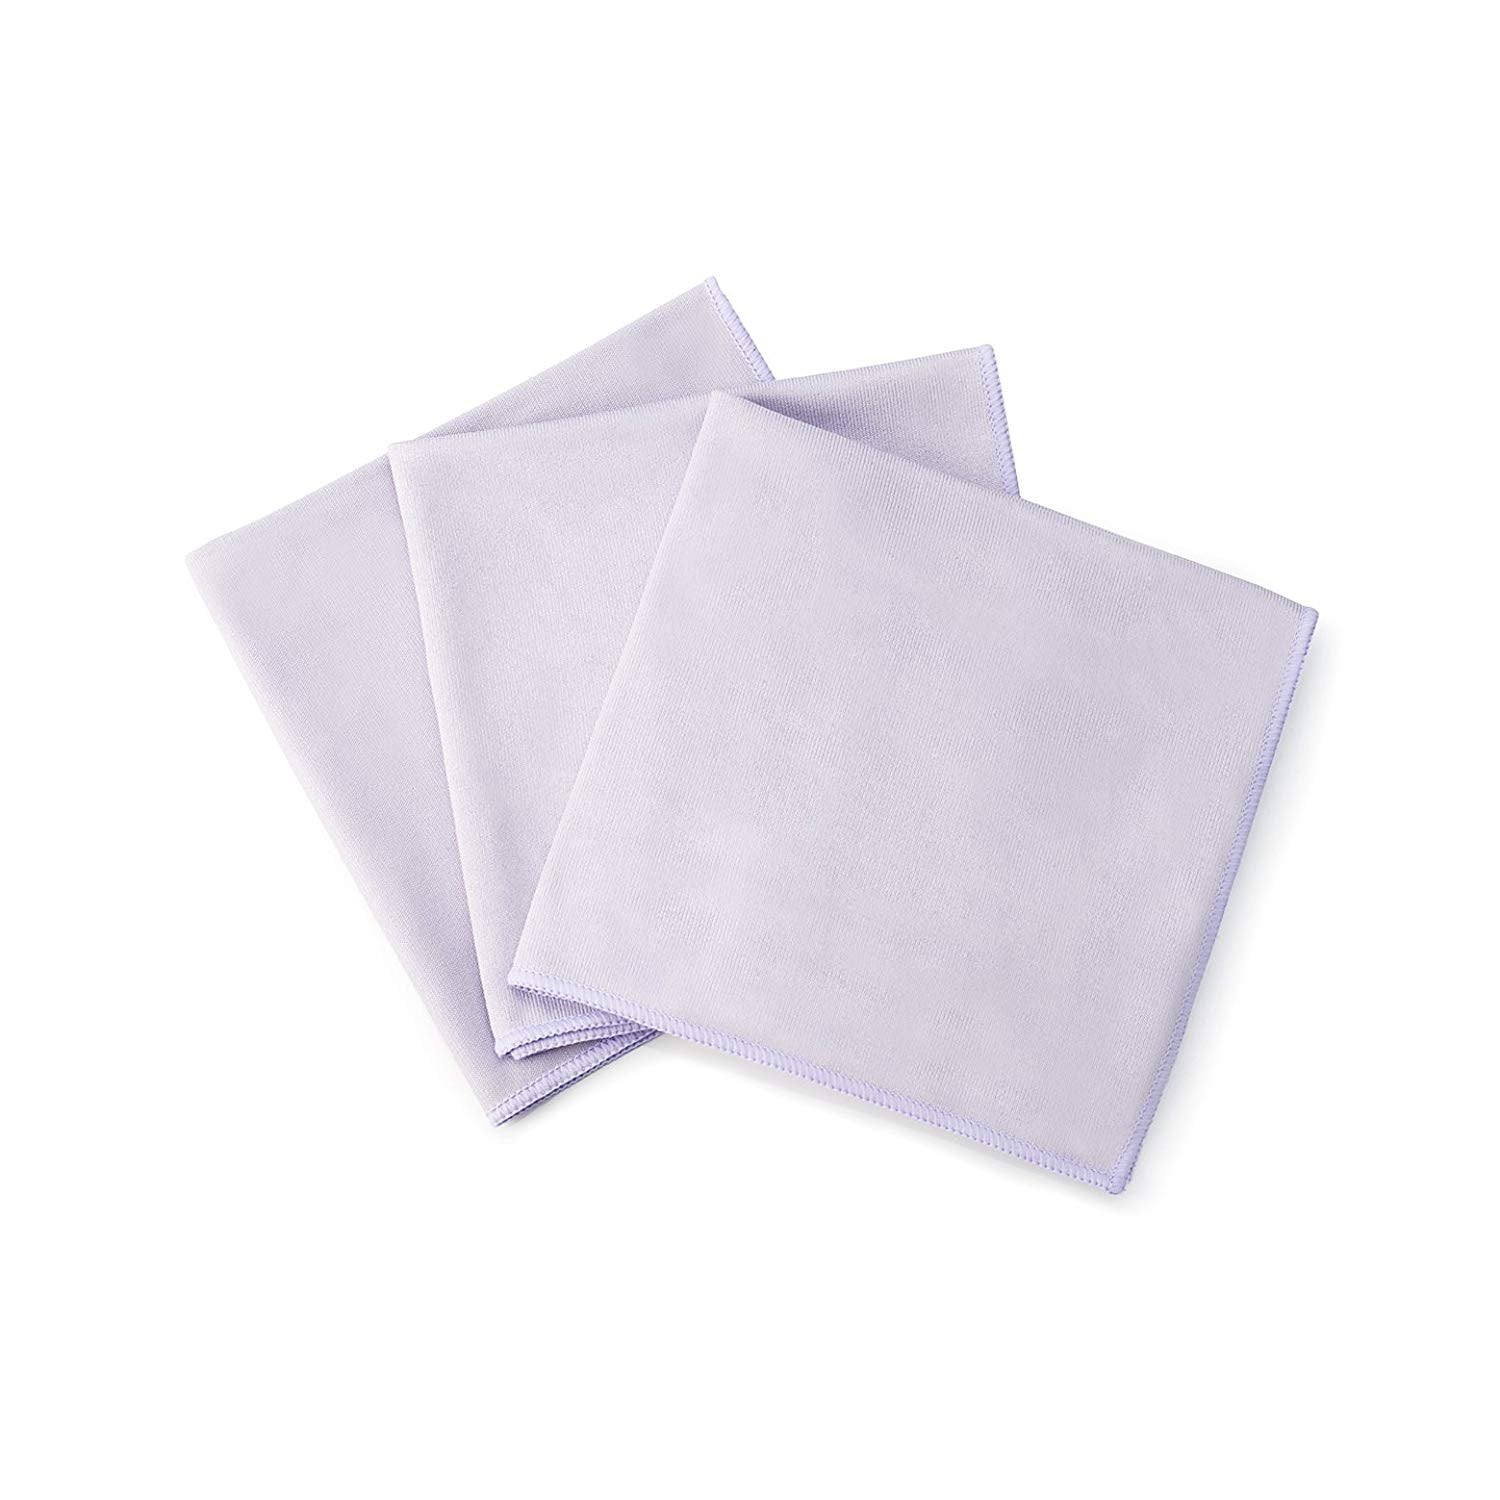 Shine Bright Microfiber Cloths (Pack of 3)-Other Cleaning Supplies-Fuller Brush Company